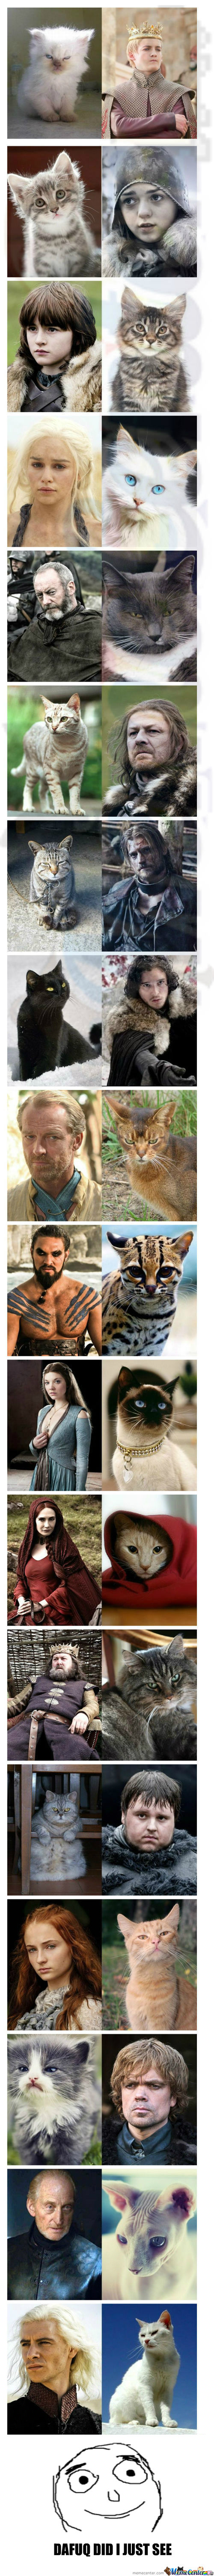 [RMX] Game Of Cats